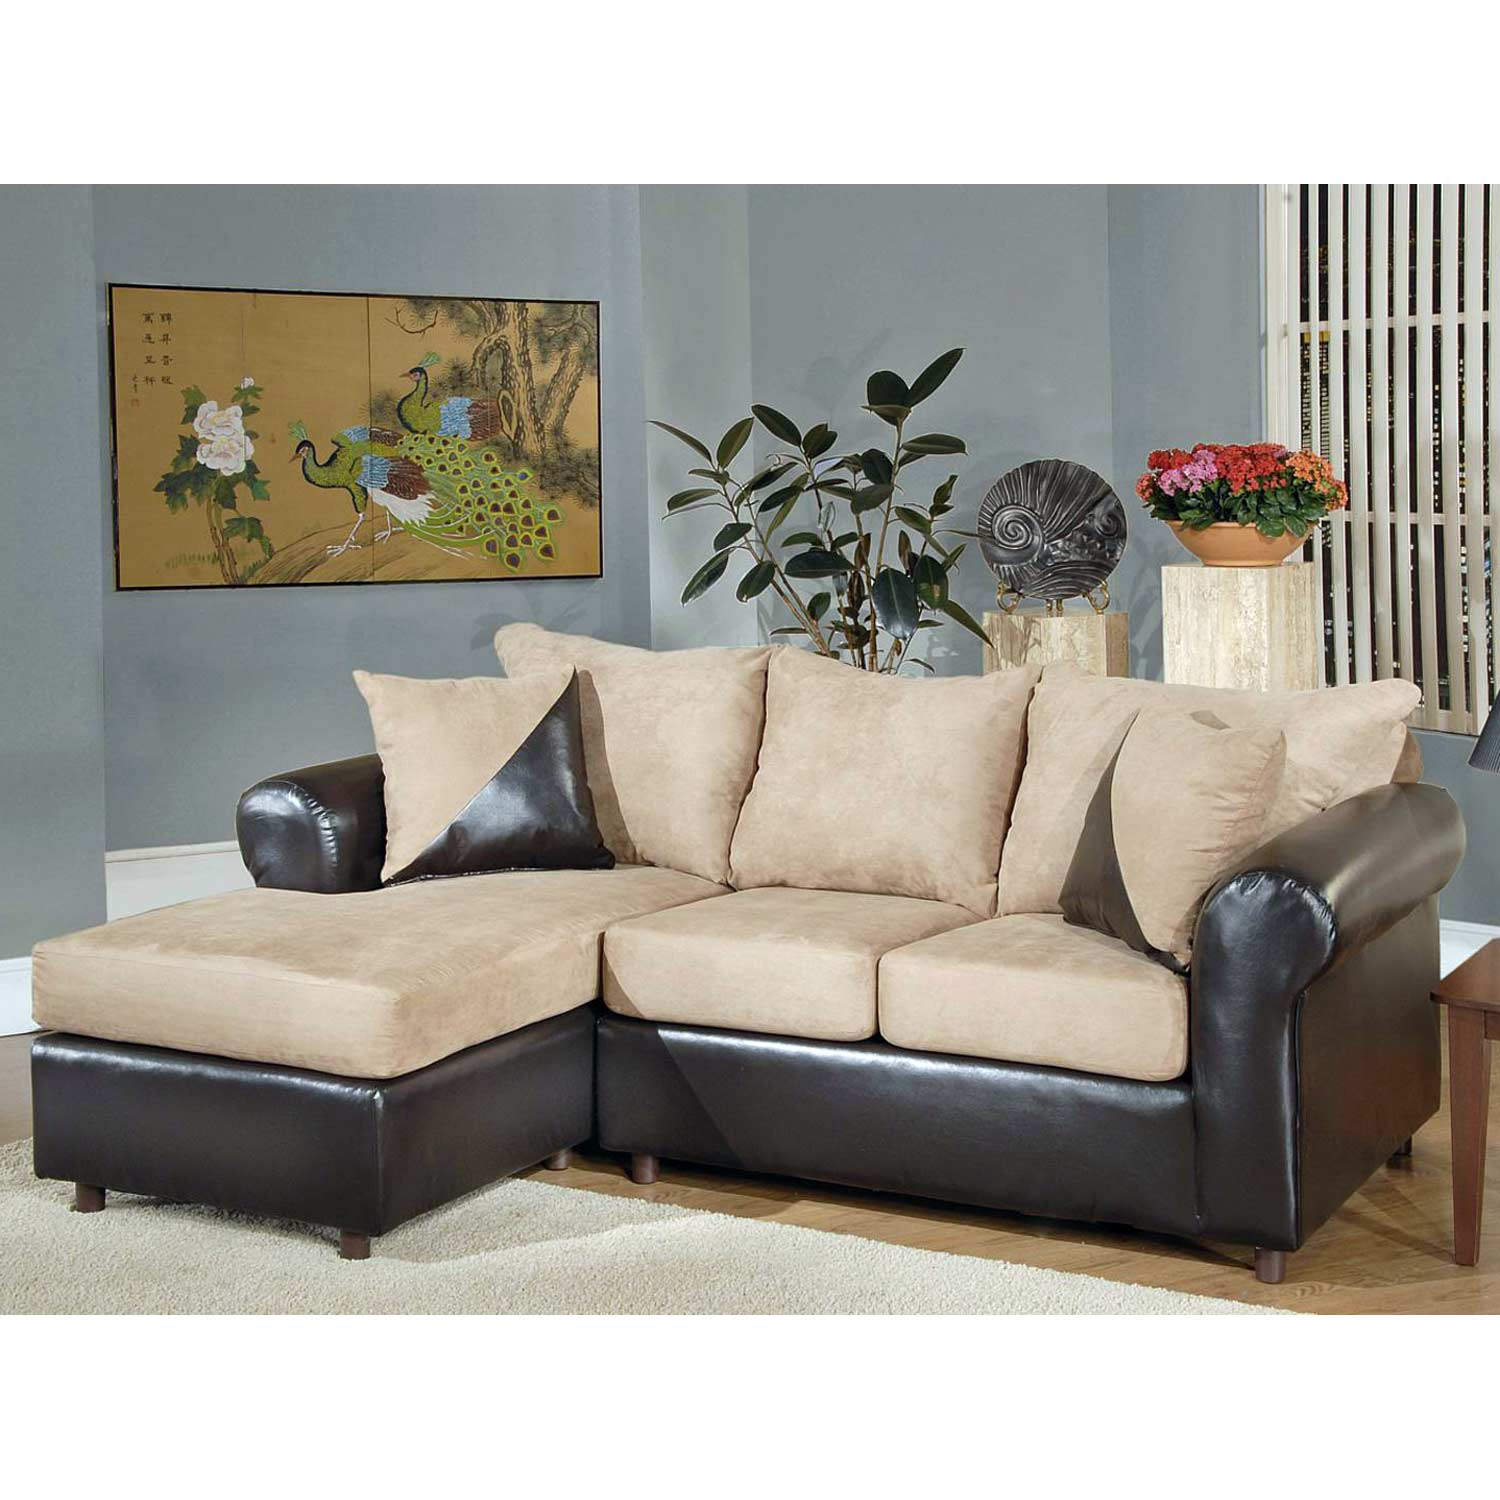 rolled arm sofa chaise convertible bed garden sets uk tim and sectional bulldozer mocha